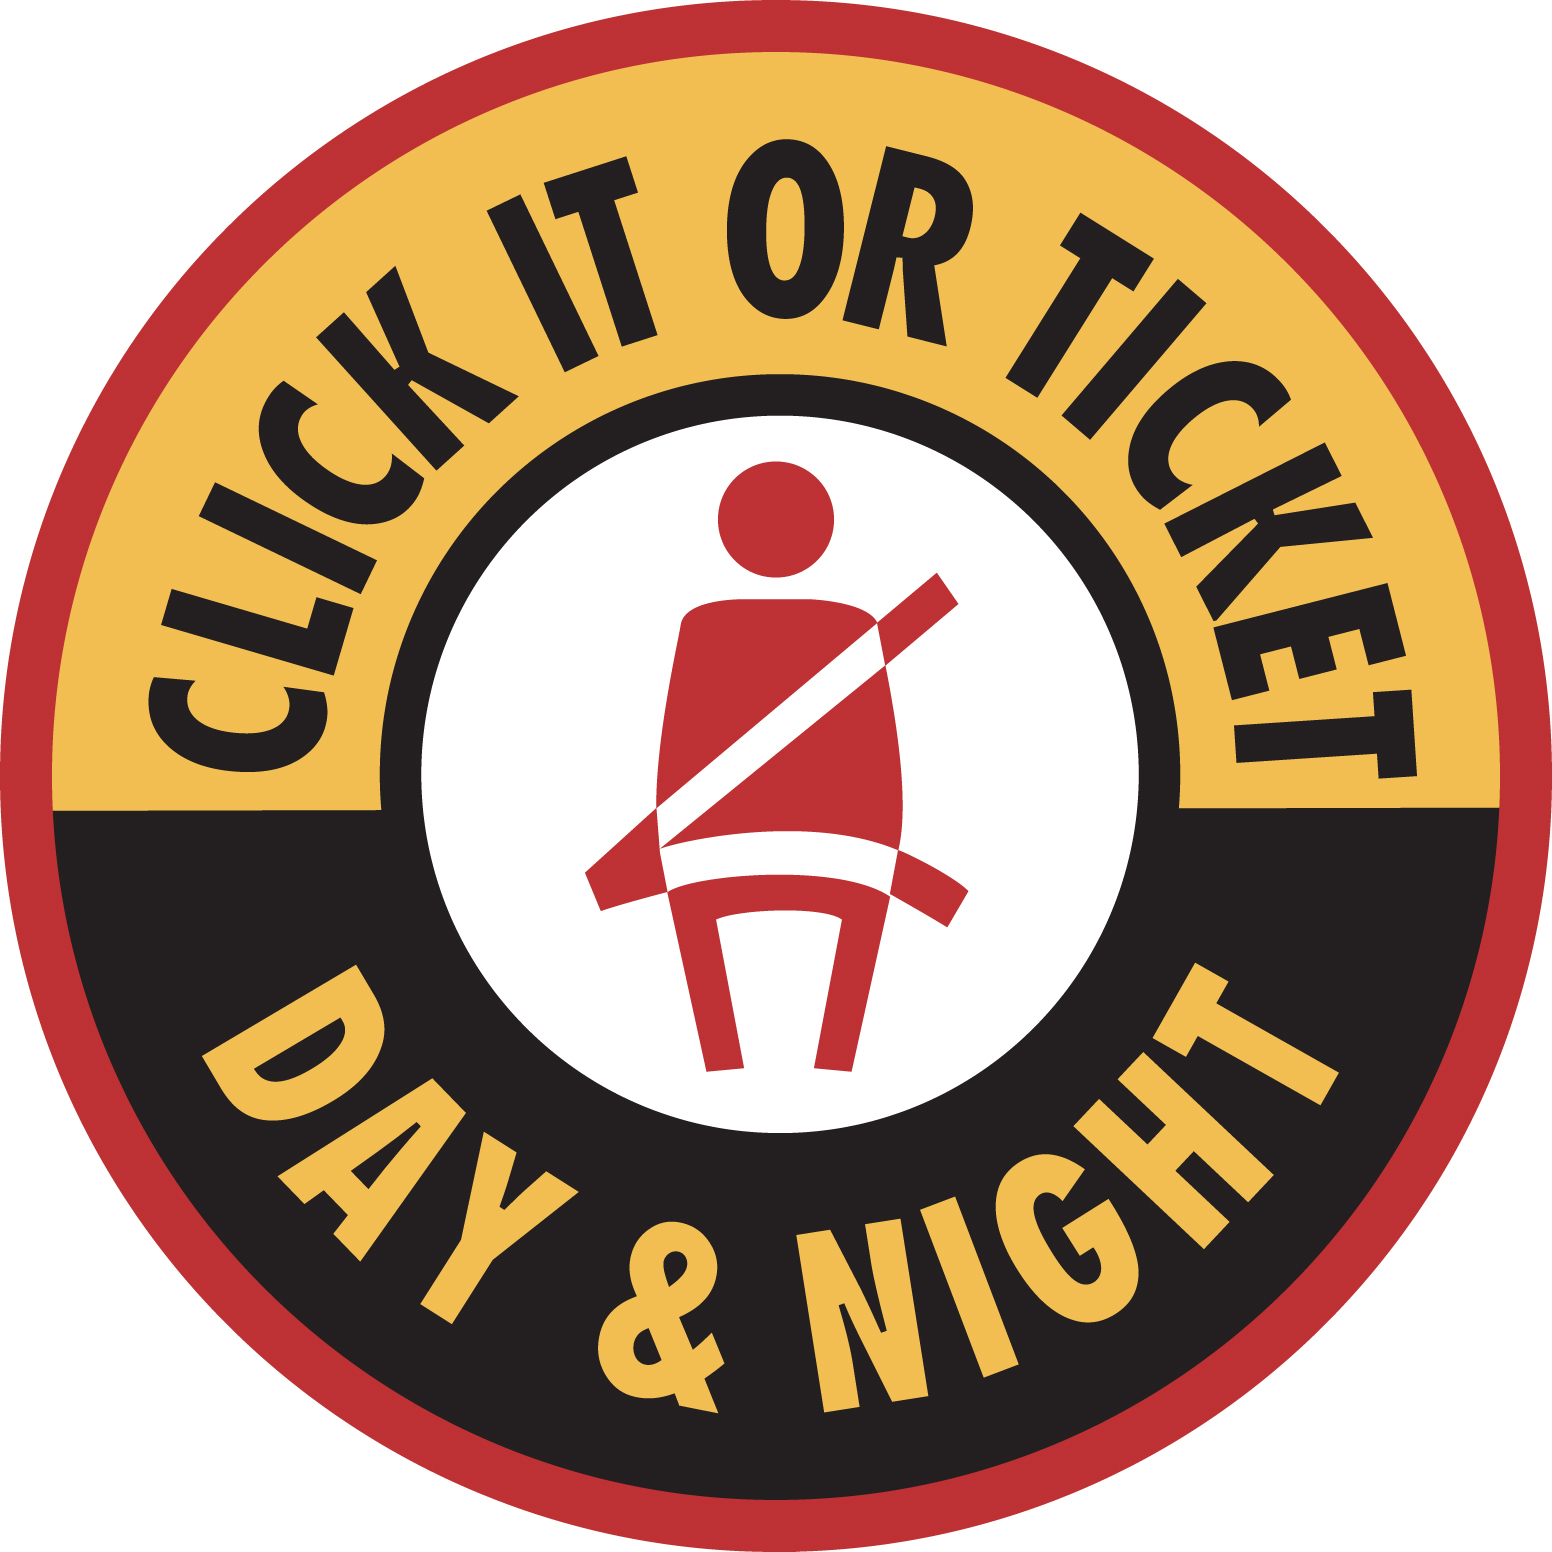 click-it-or-ticket-logo-redrawn